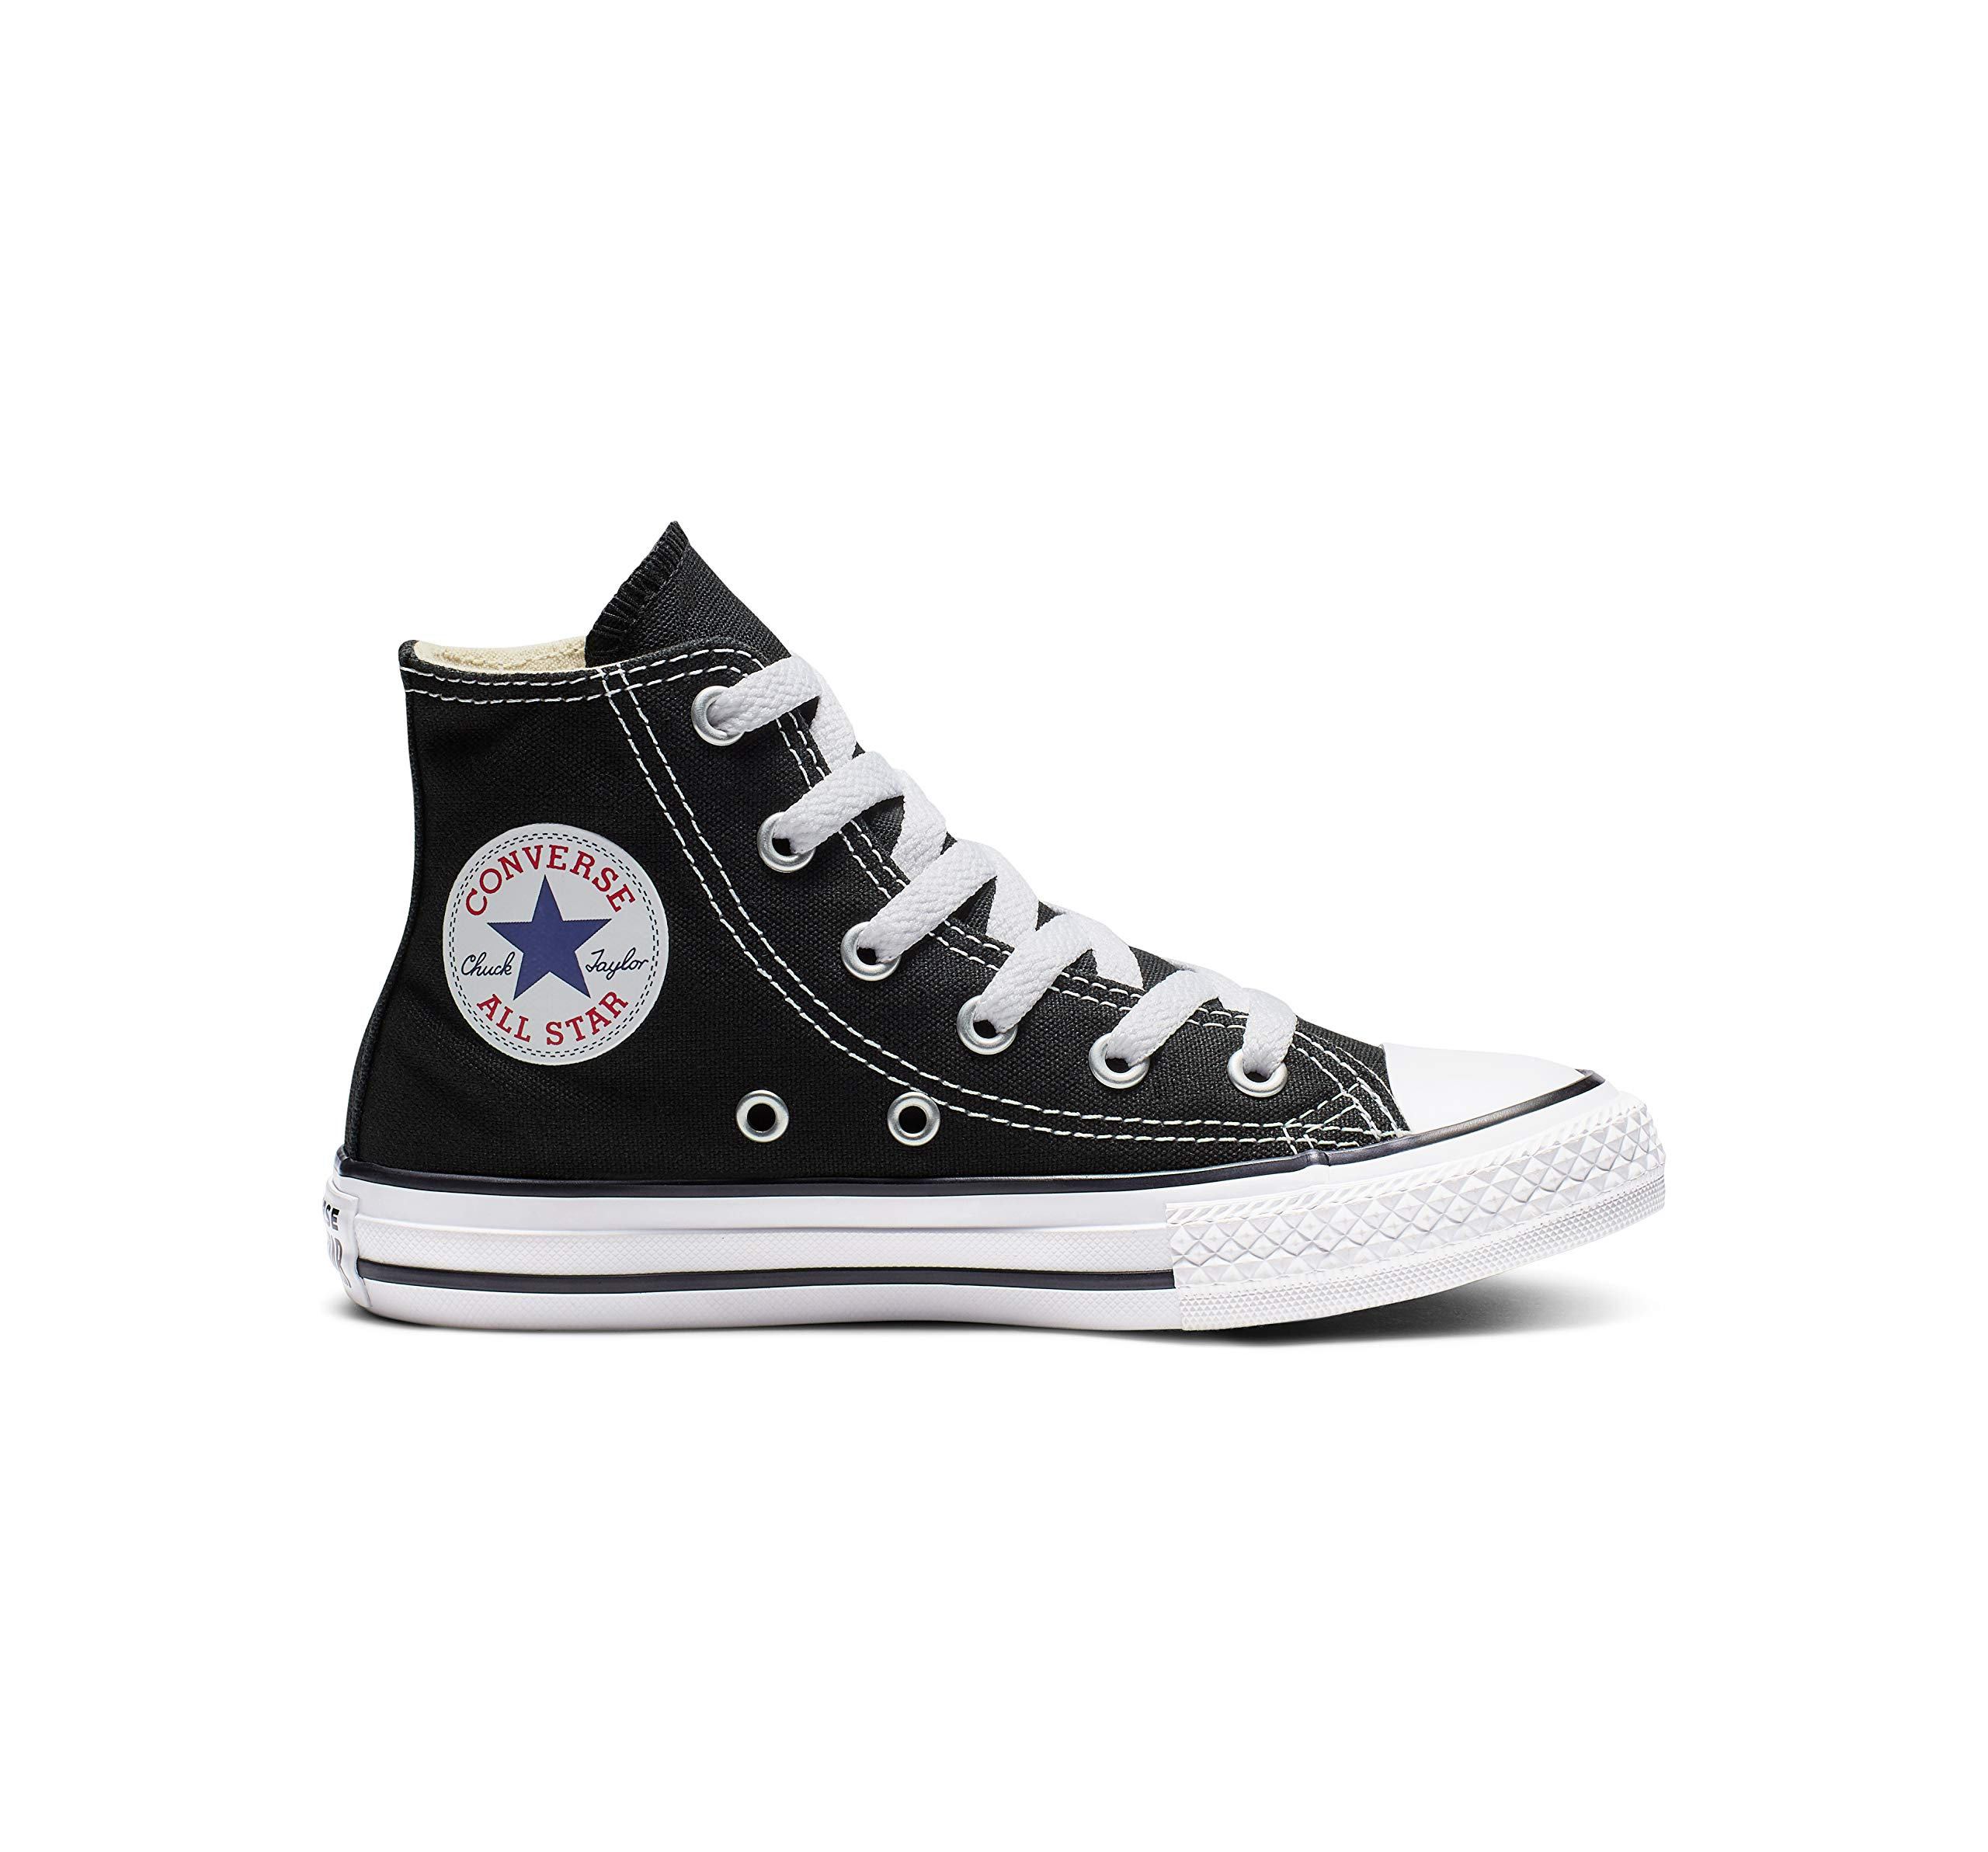 5979a5a0710de Converse Kid's Chuck Taylor All Star High Top Shoe, Black, 3 Little Kid  (4-8 Years)